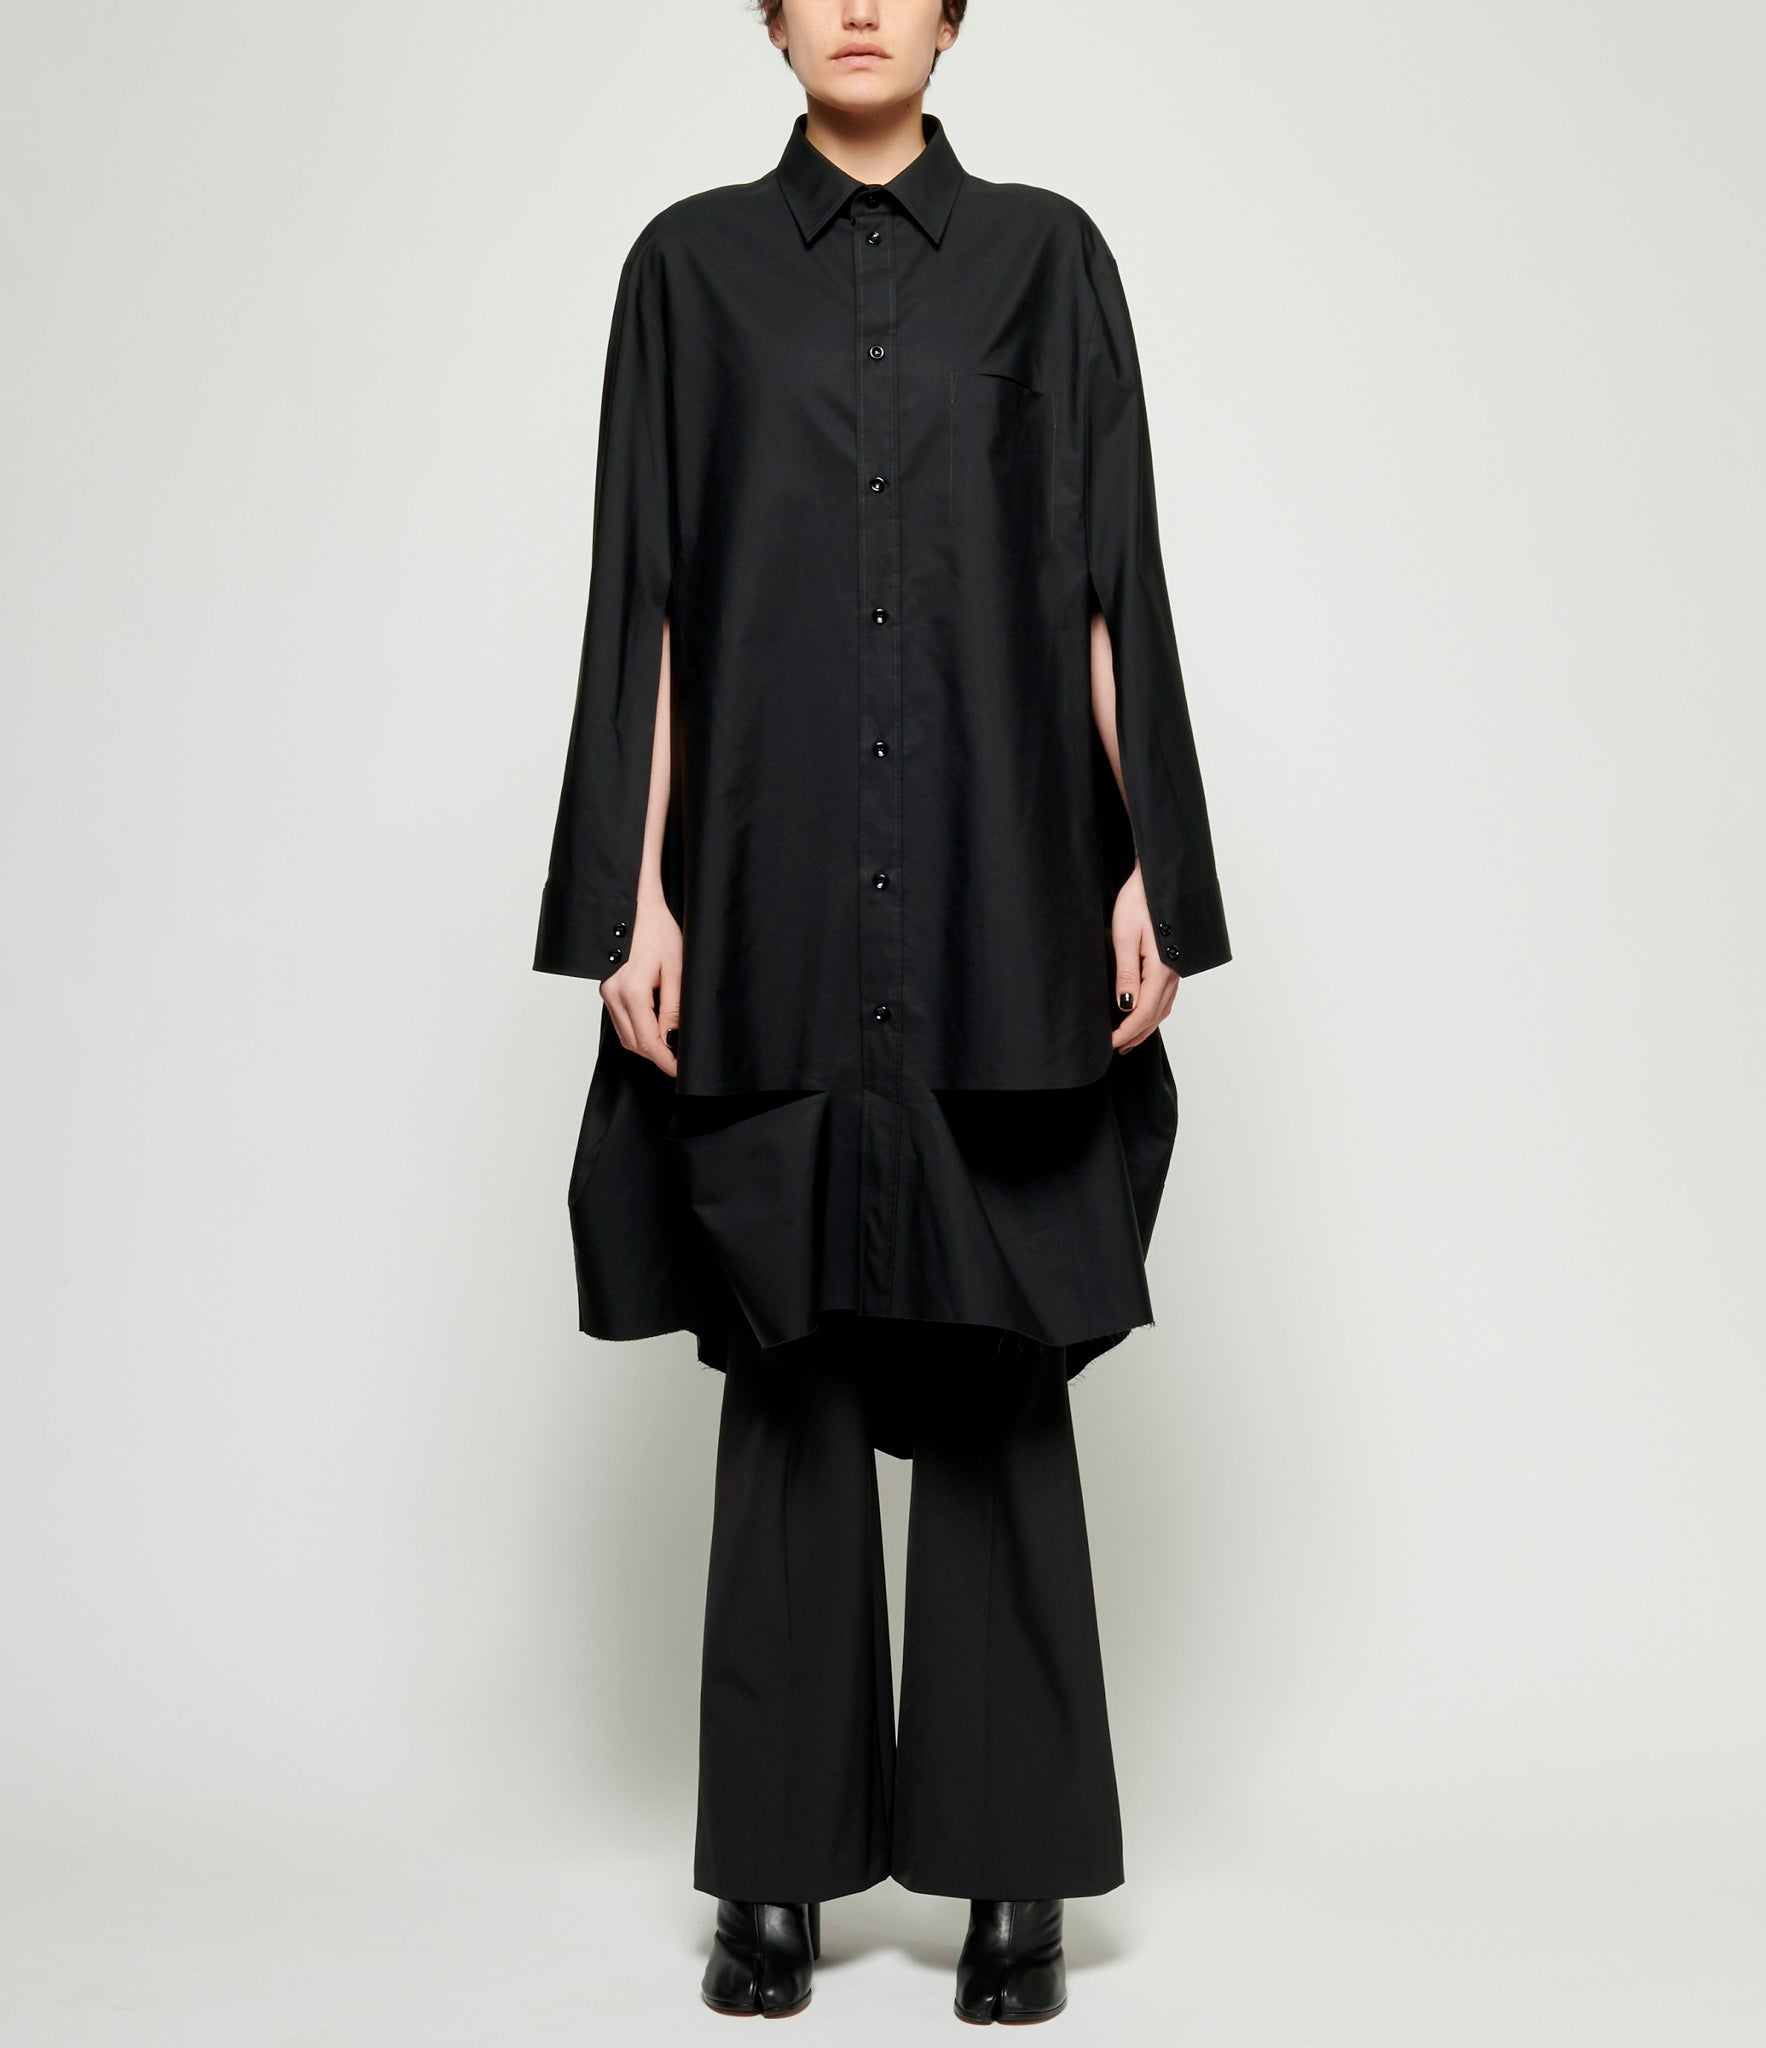 Maison Margiela Runway Cotton Poplin Poncho Shirt Dress